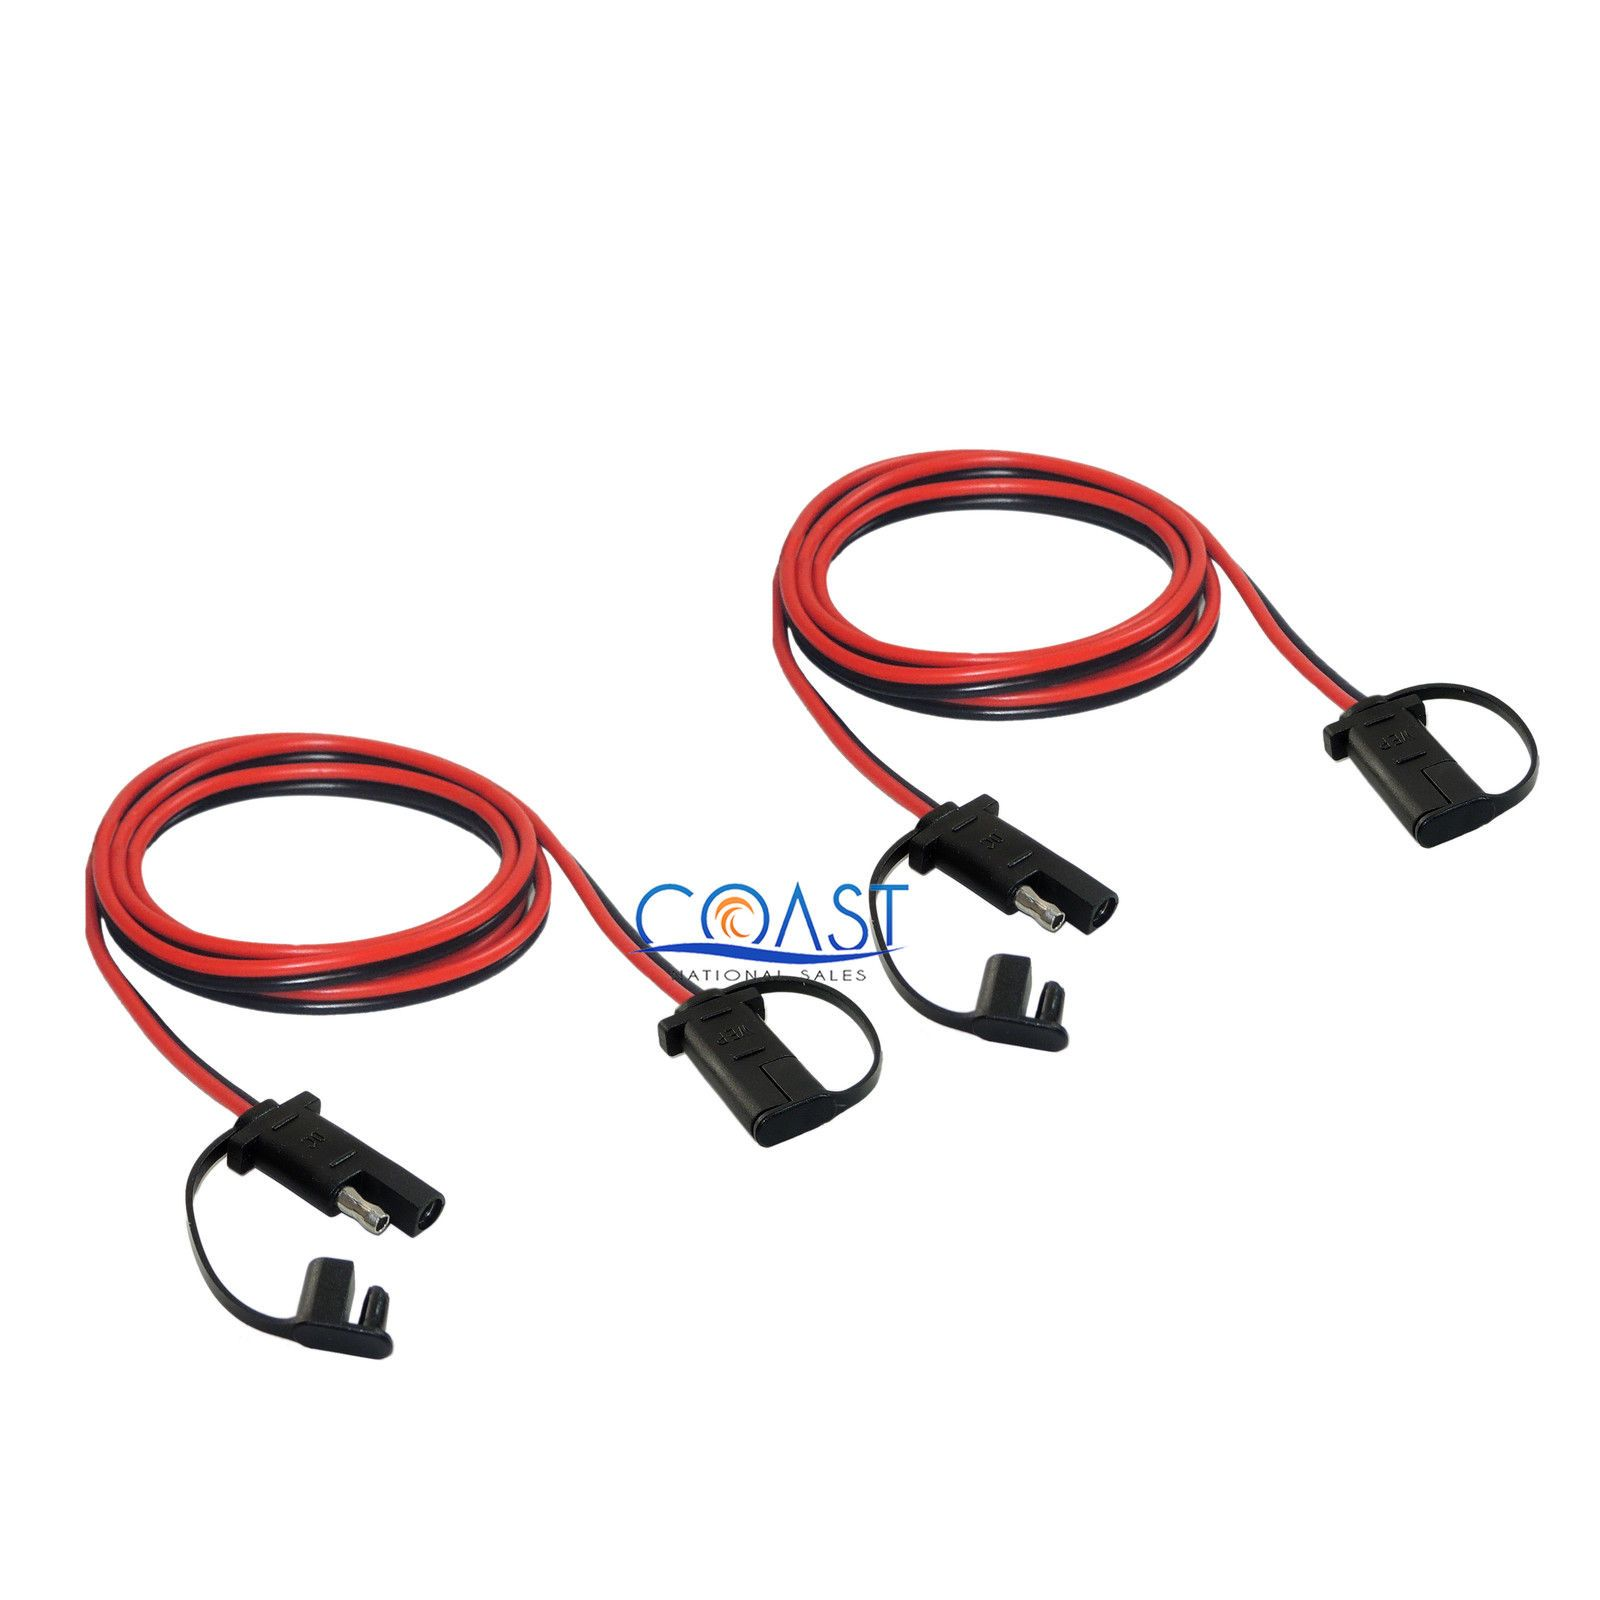 2x Car Quick Disconnect Connect 16 Gauge 2 Pin 48 Sae Waterproof Wire Harness 1175